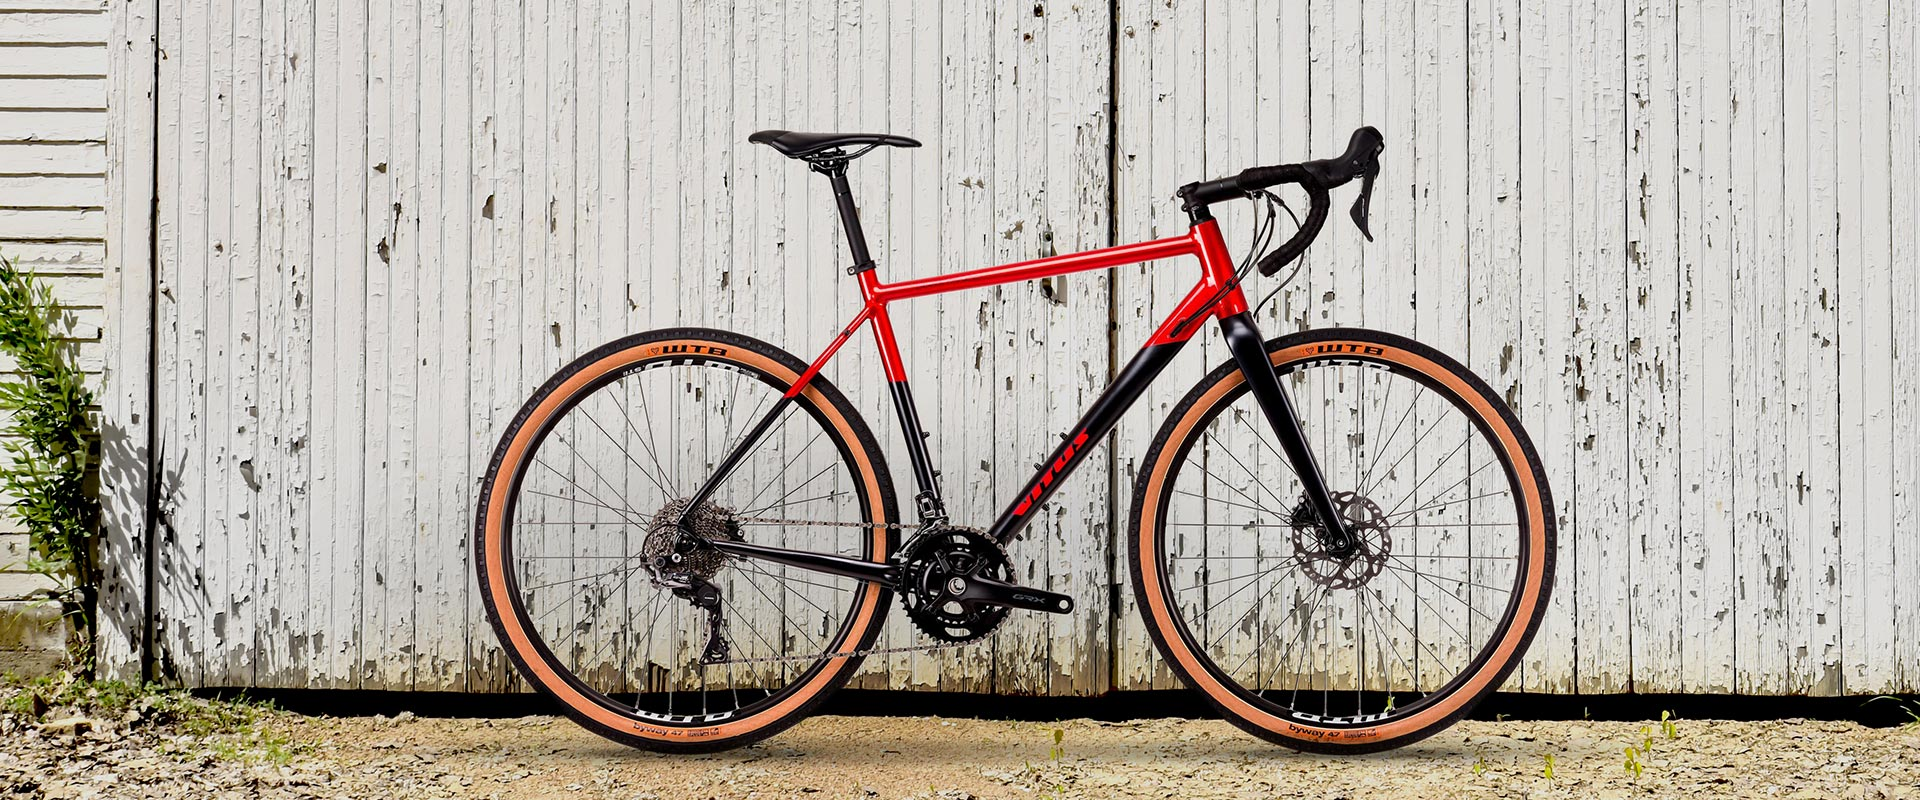 Substance VRS 2 Adventure Road Bike